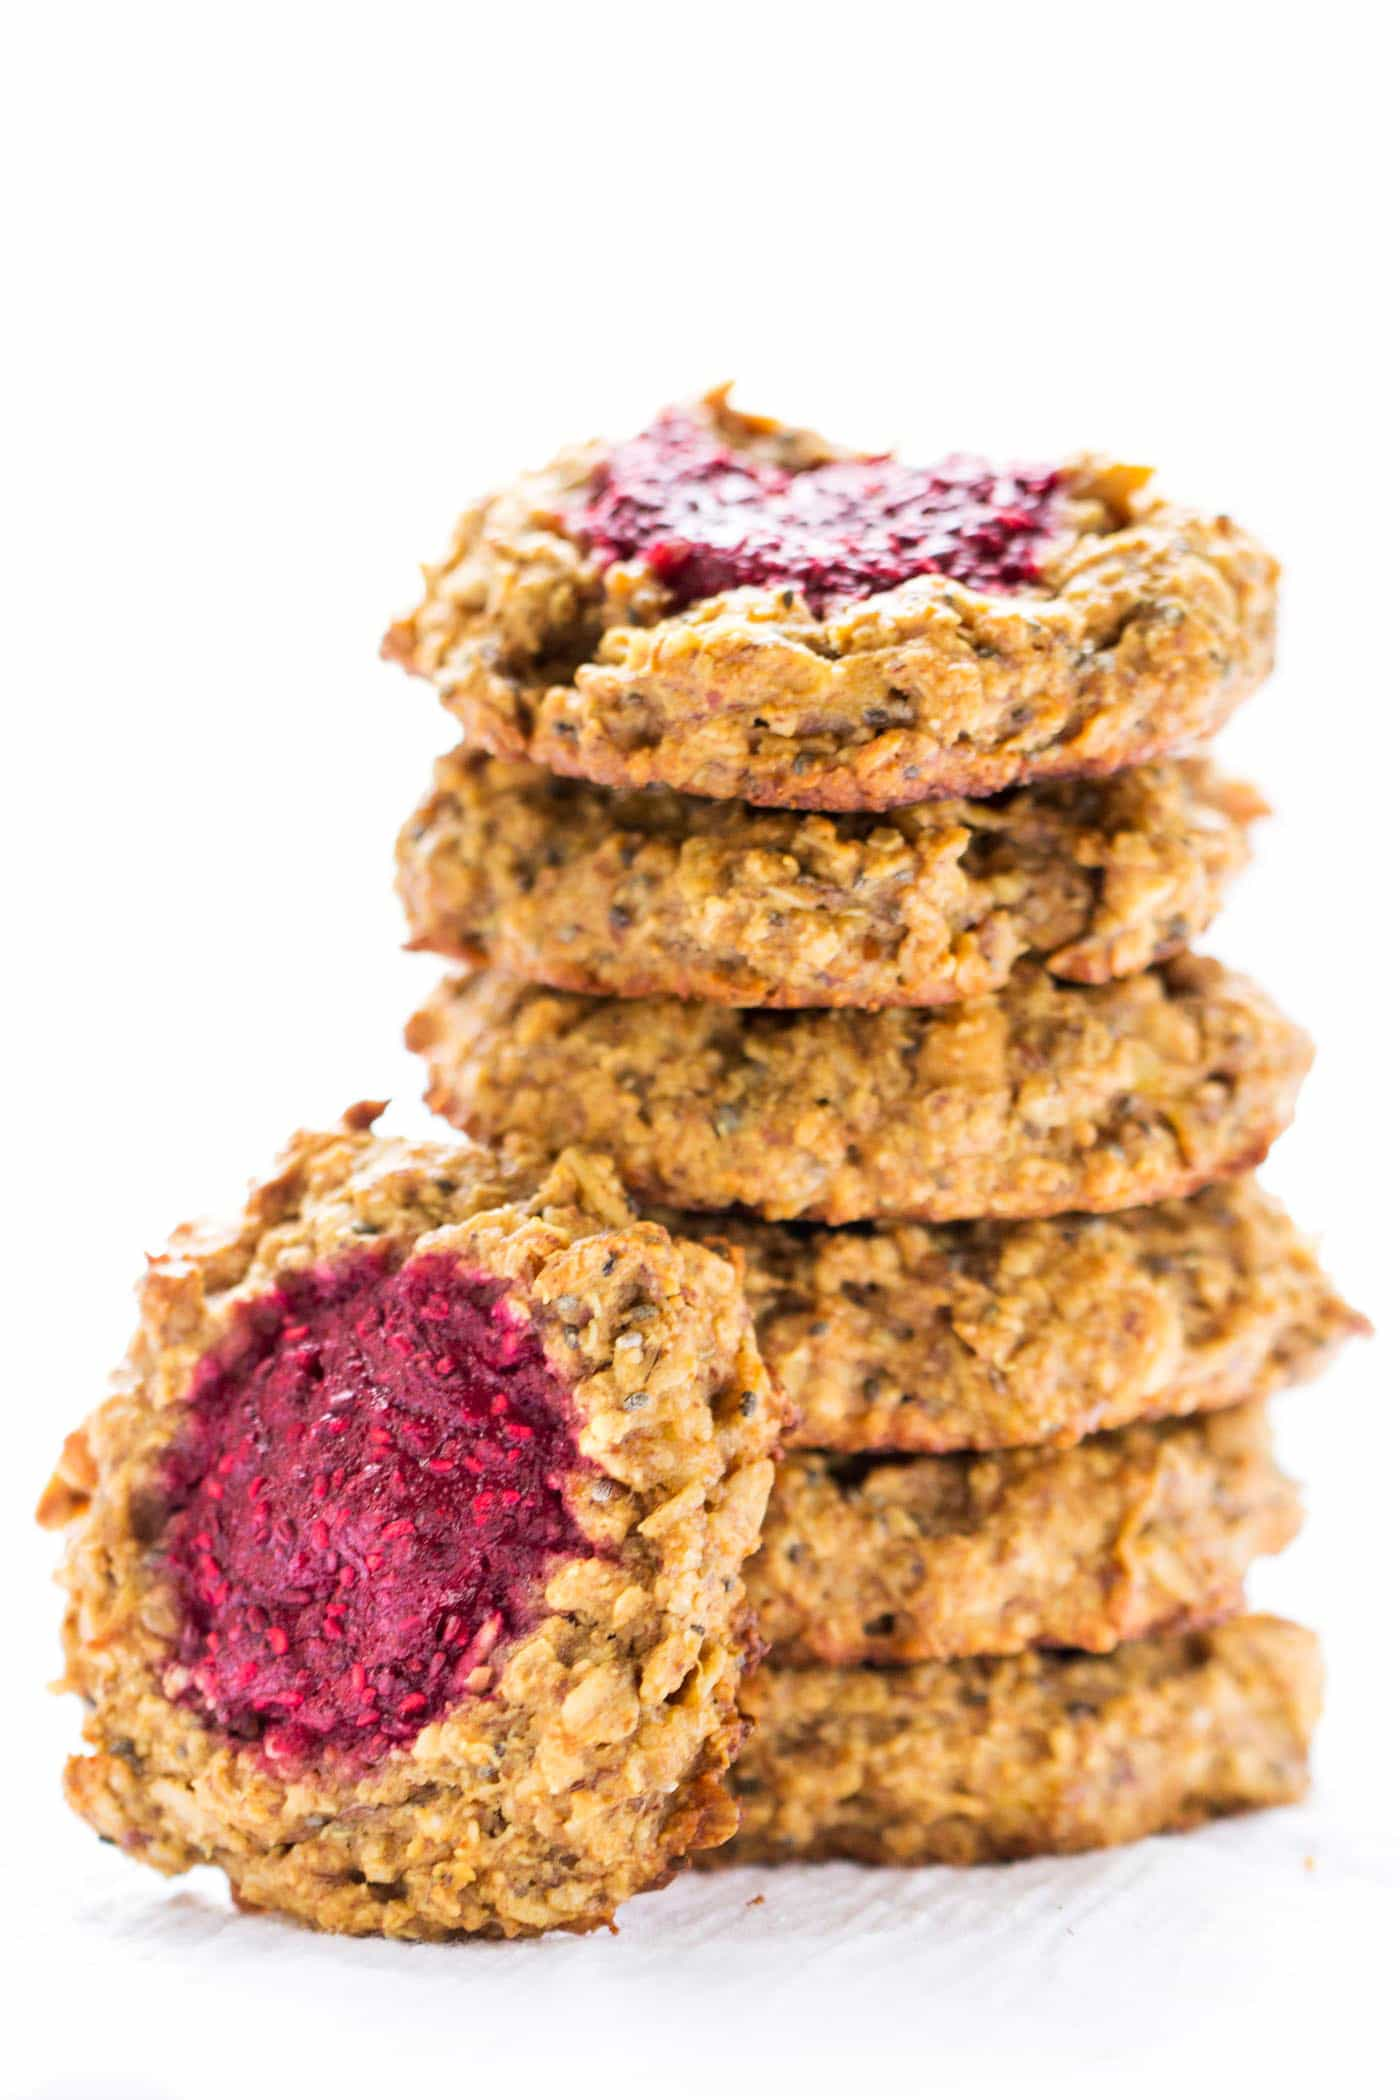 VEGAN! Quinoa Breakfast Cookies that taste like peanut butter + jelly sandwiches....simple, healthy and SO GOOD!